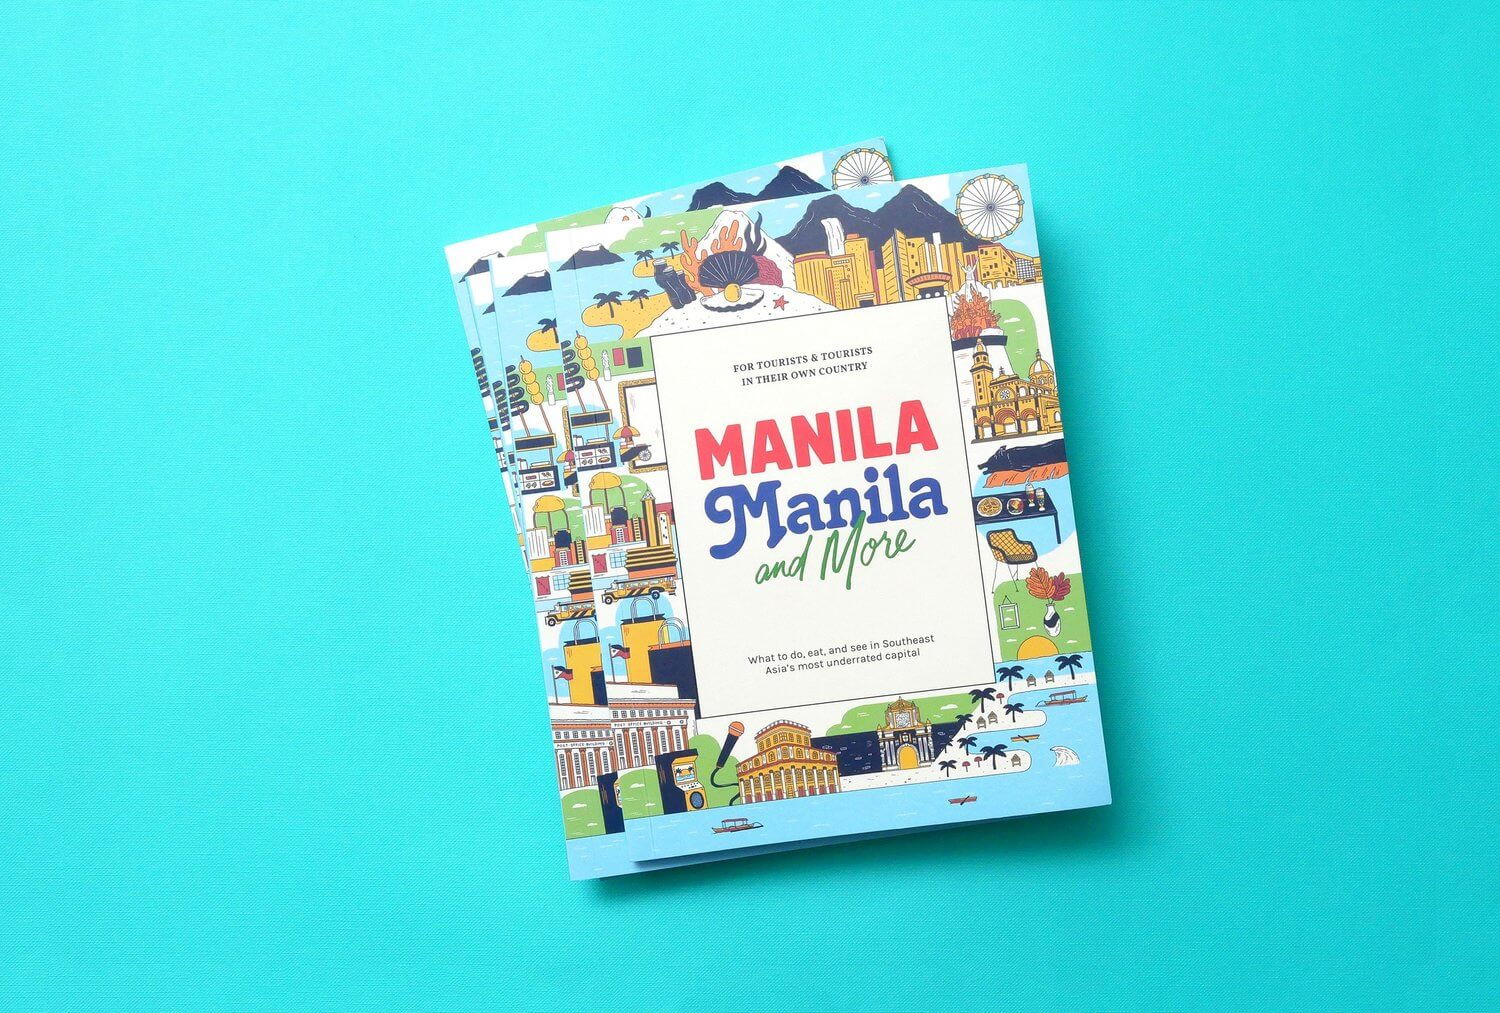 Manila, Manila, and More Guidebook Book Cover Art